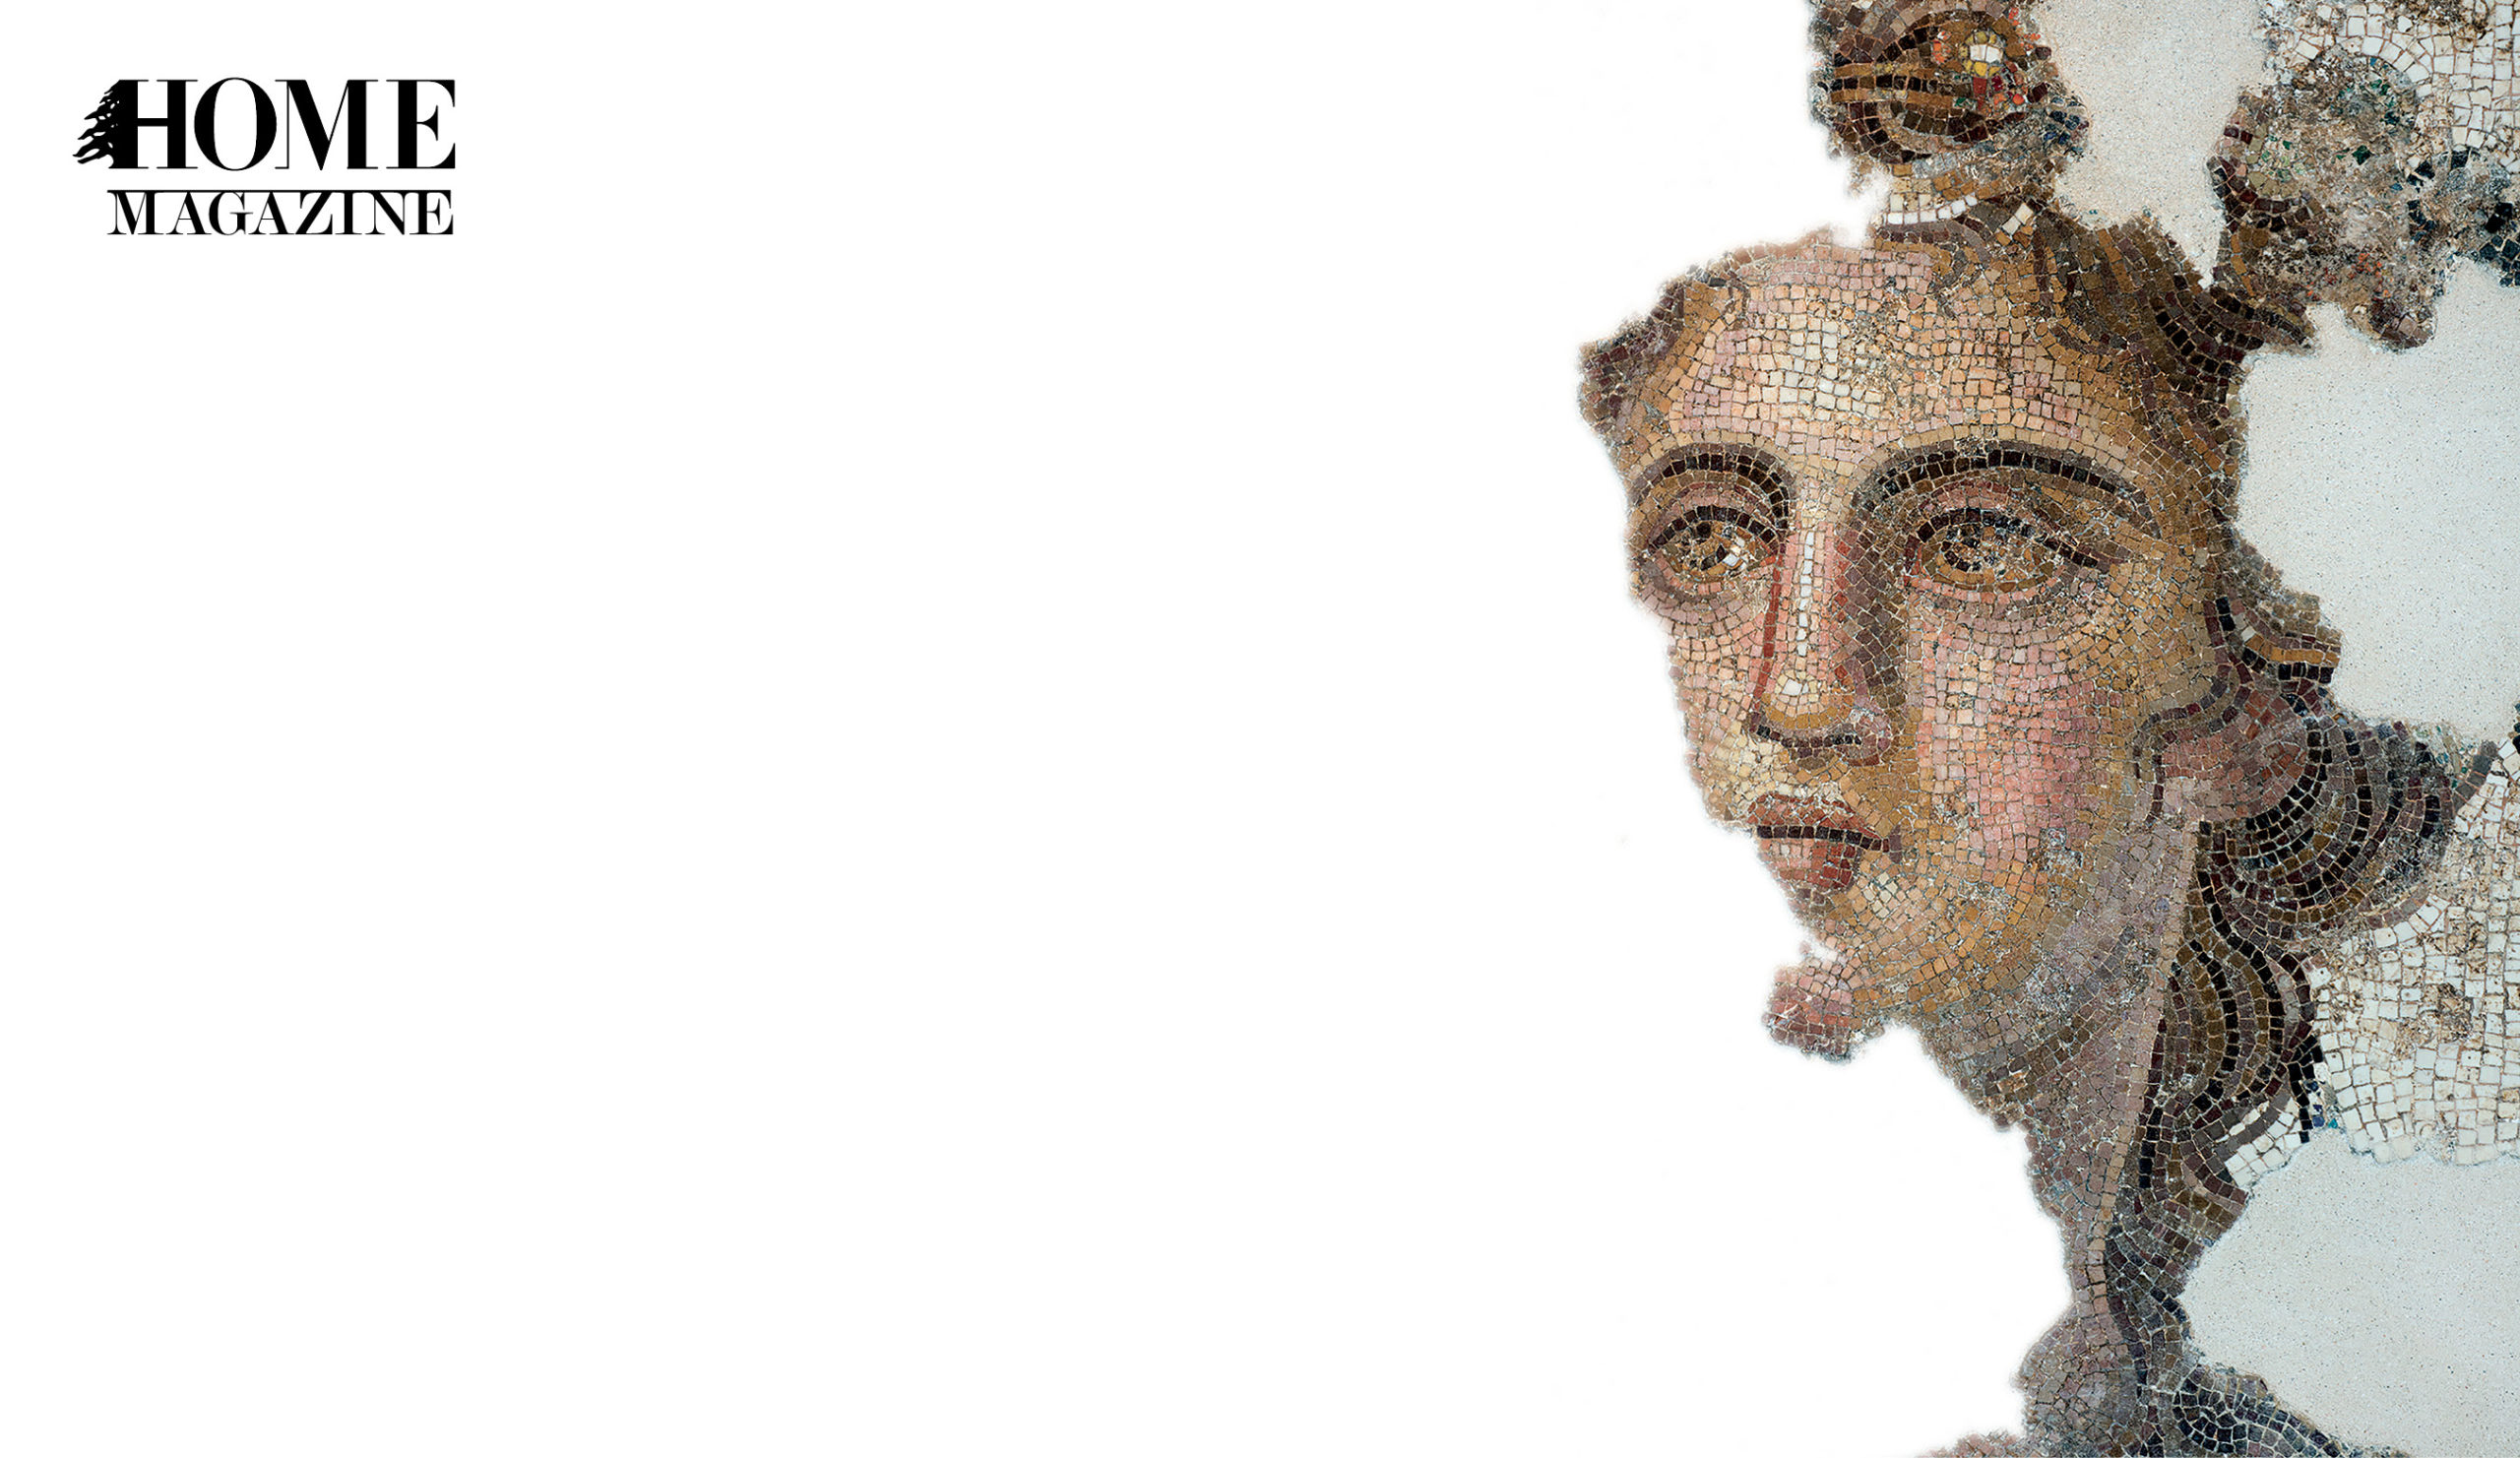 Illustration of a woman's face in mosaic